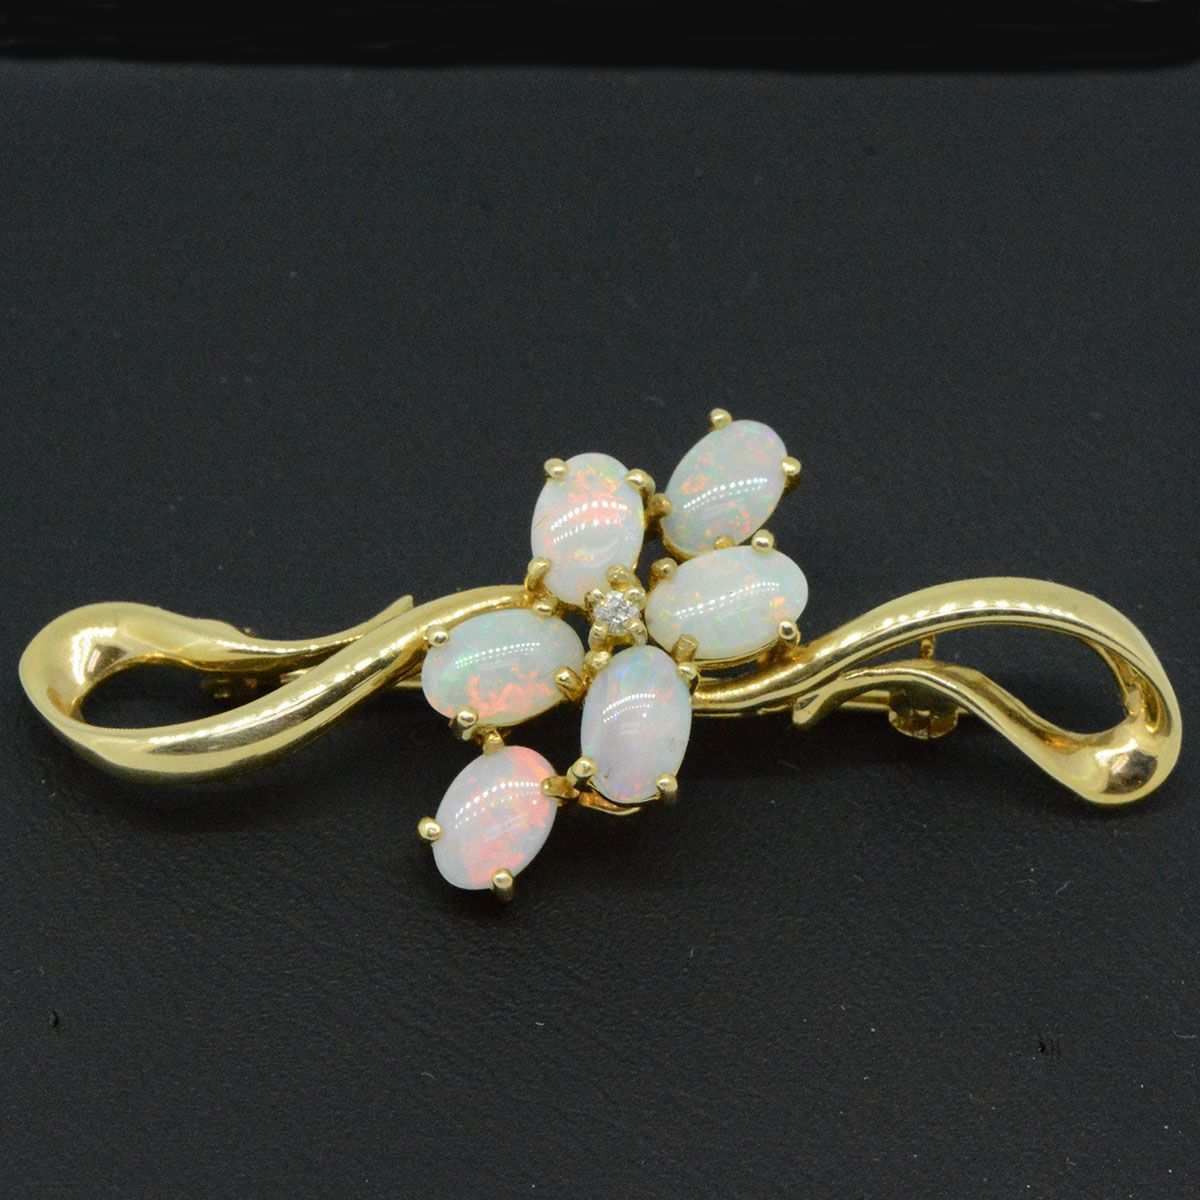 18ct yellow gold brooch with diamond